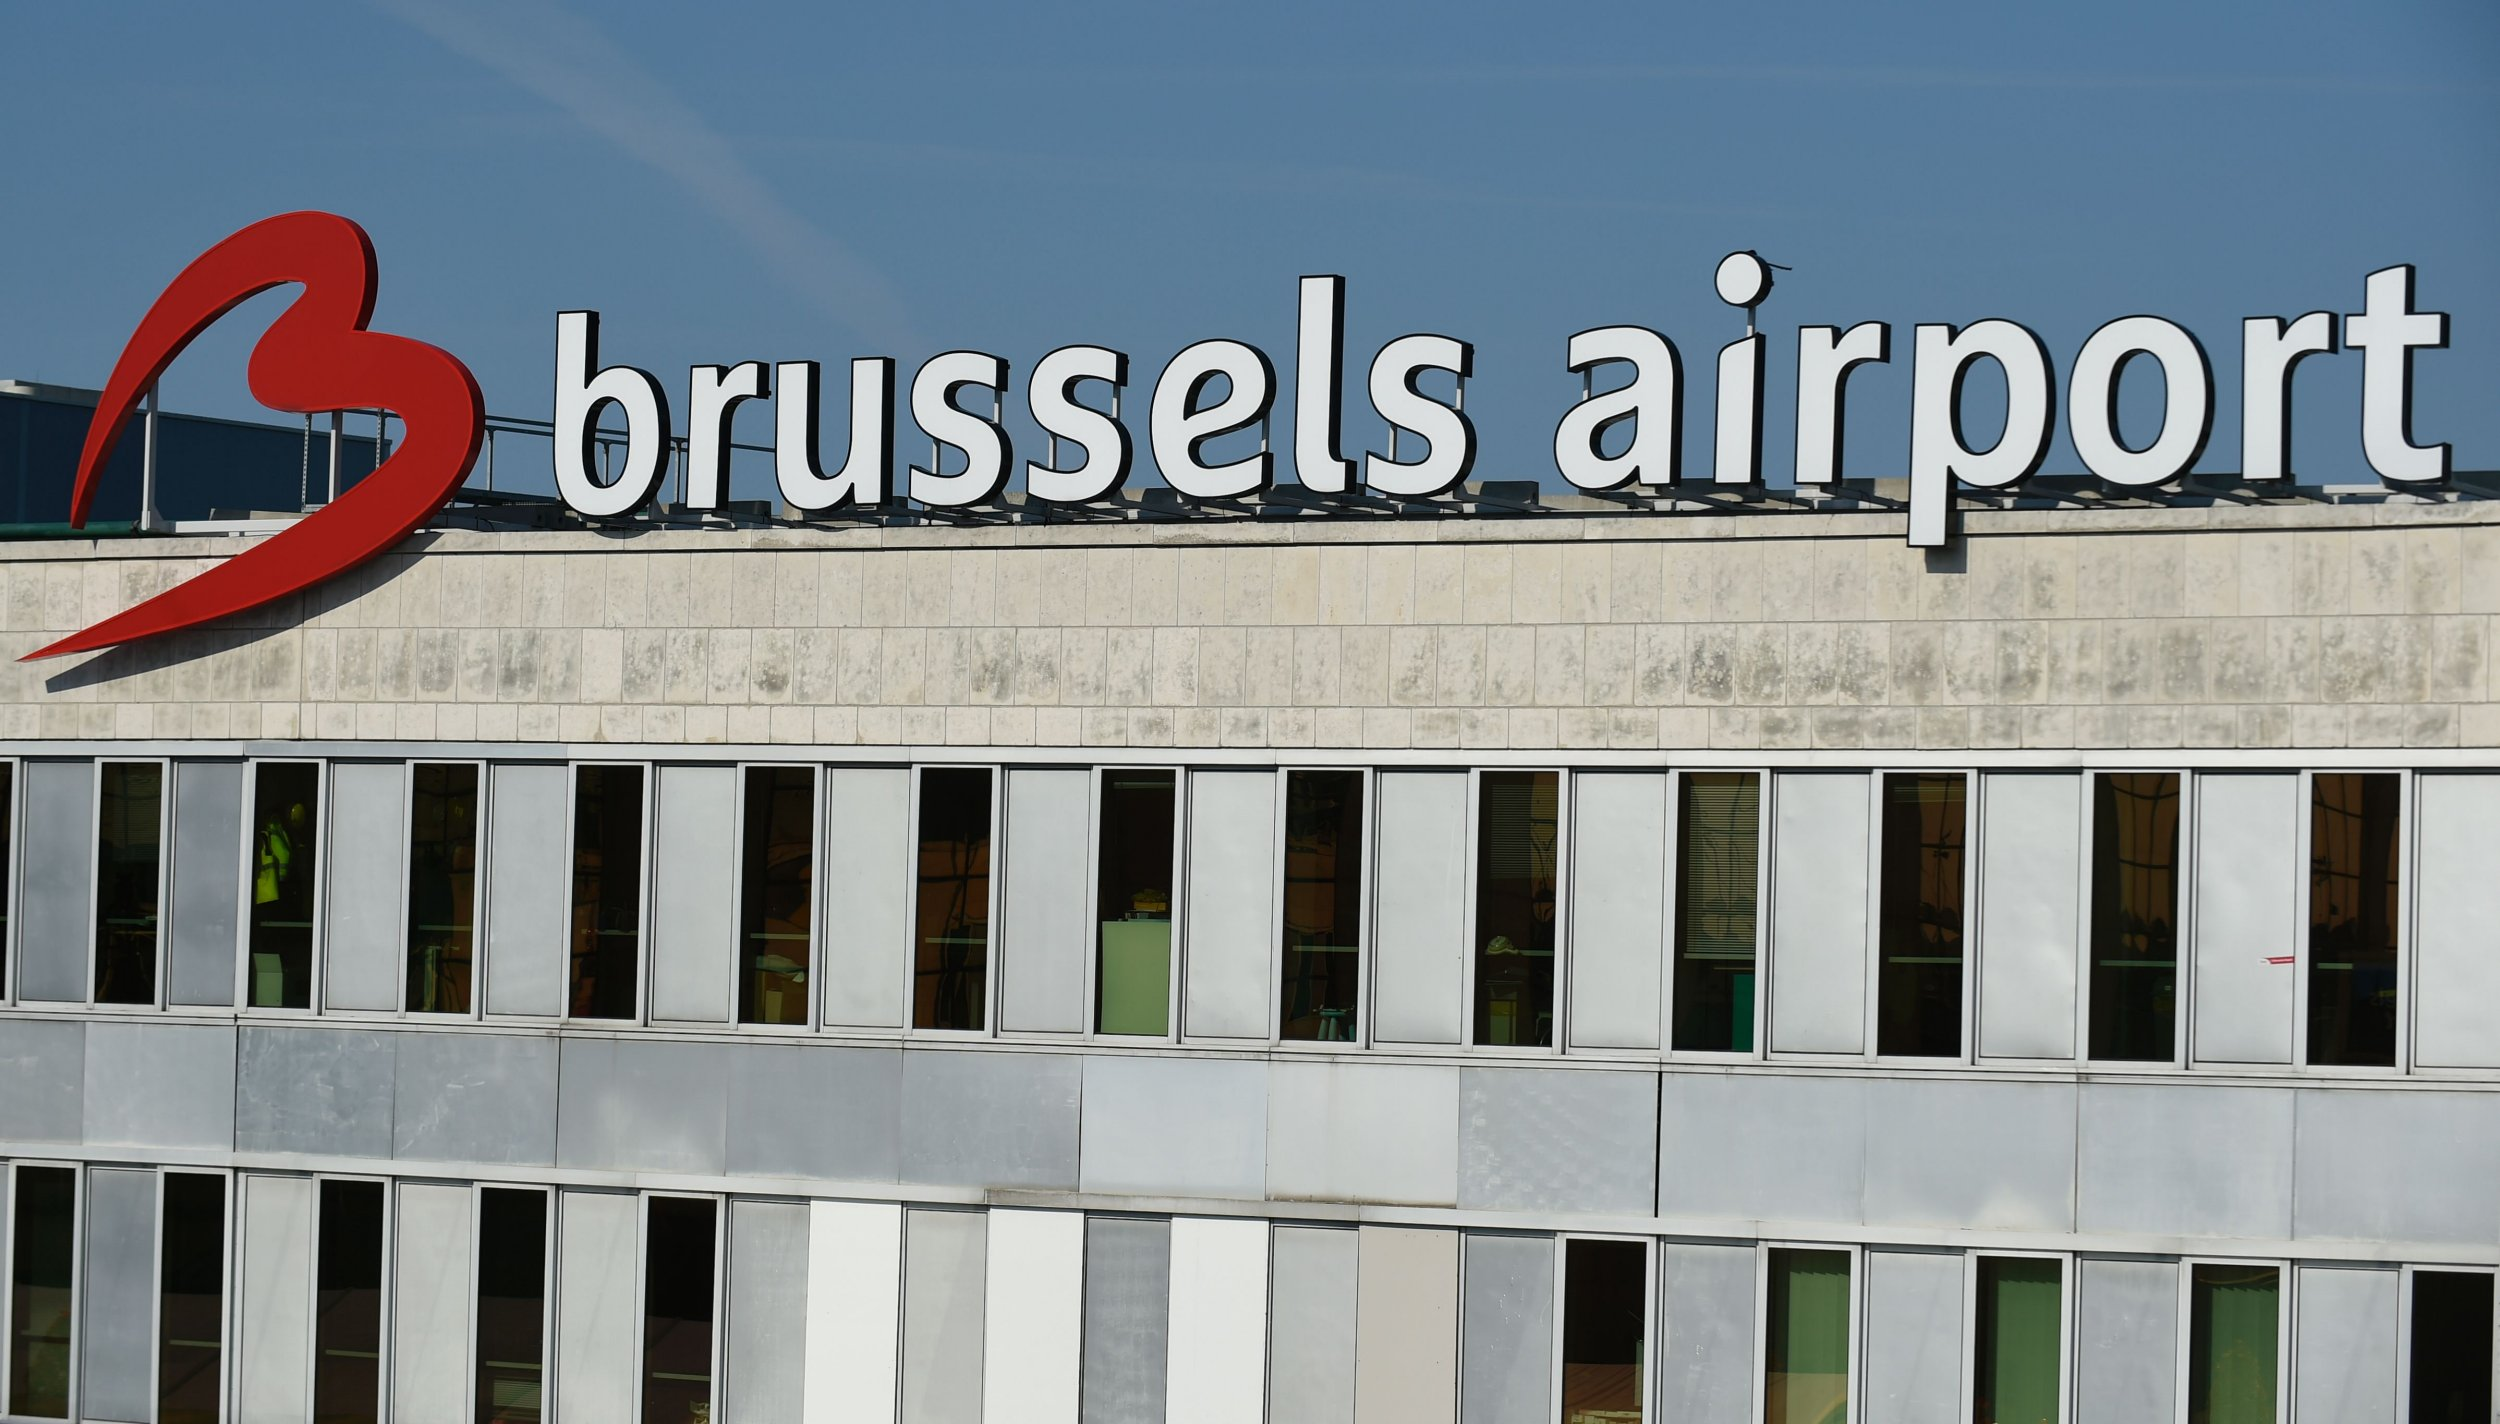 The departure hall is pictured on May 1, 2016 during the partial reopening of the departure hall of Brussels Airport in Zaventem, after it was badly damaged in twin suicide attacks on March 22, that killed 16 people. nA total of 32 people were killed and more than 300 wounded in coordinated suicide bombings at the airport and a metro station in central Brussels on March 22 in Belgium's worst ever terror attacks. / AFP / JOHN THYS (Photo credit should read JOHN THYS/AFP/Getty Images)